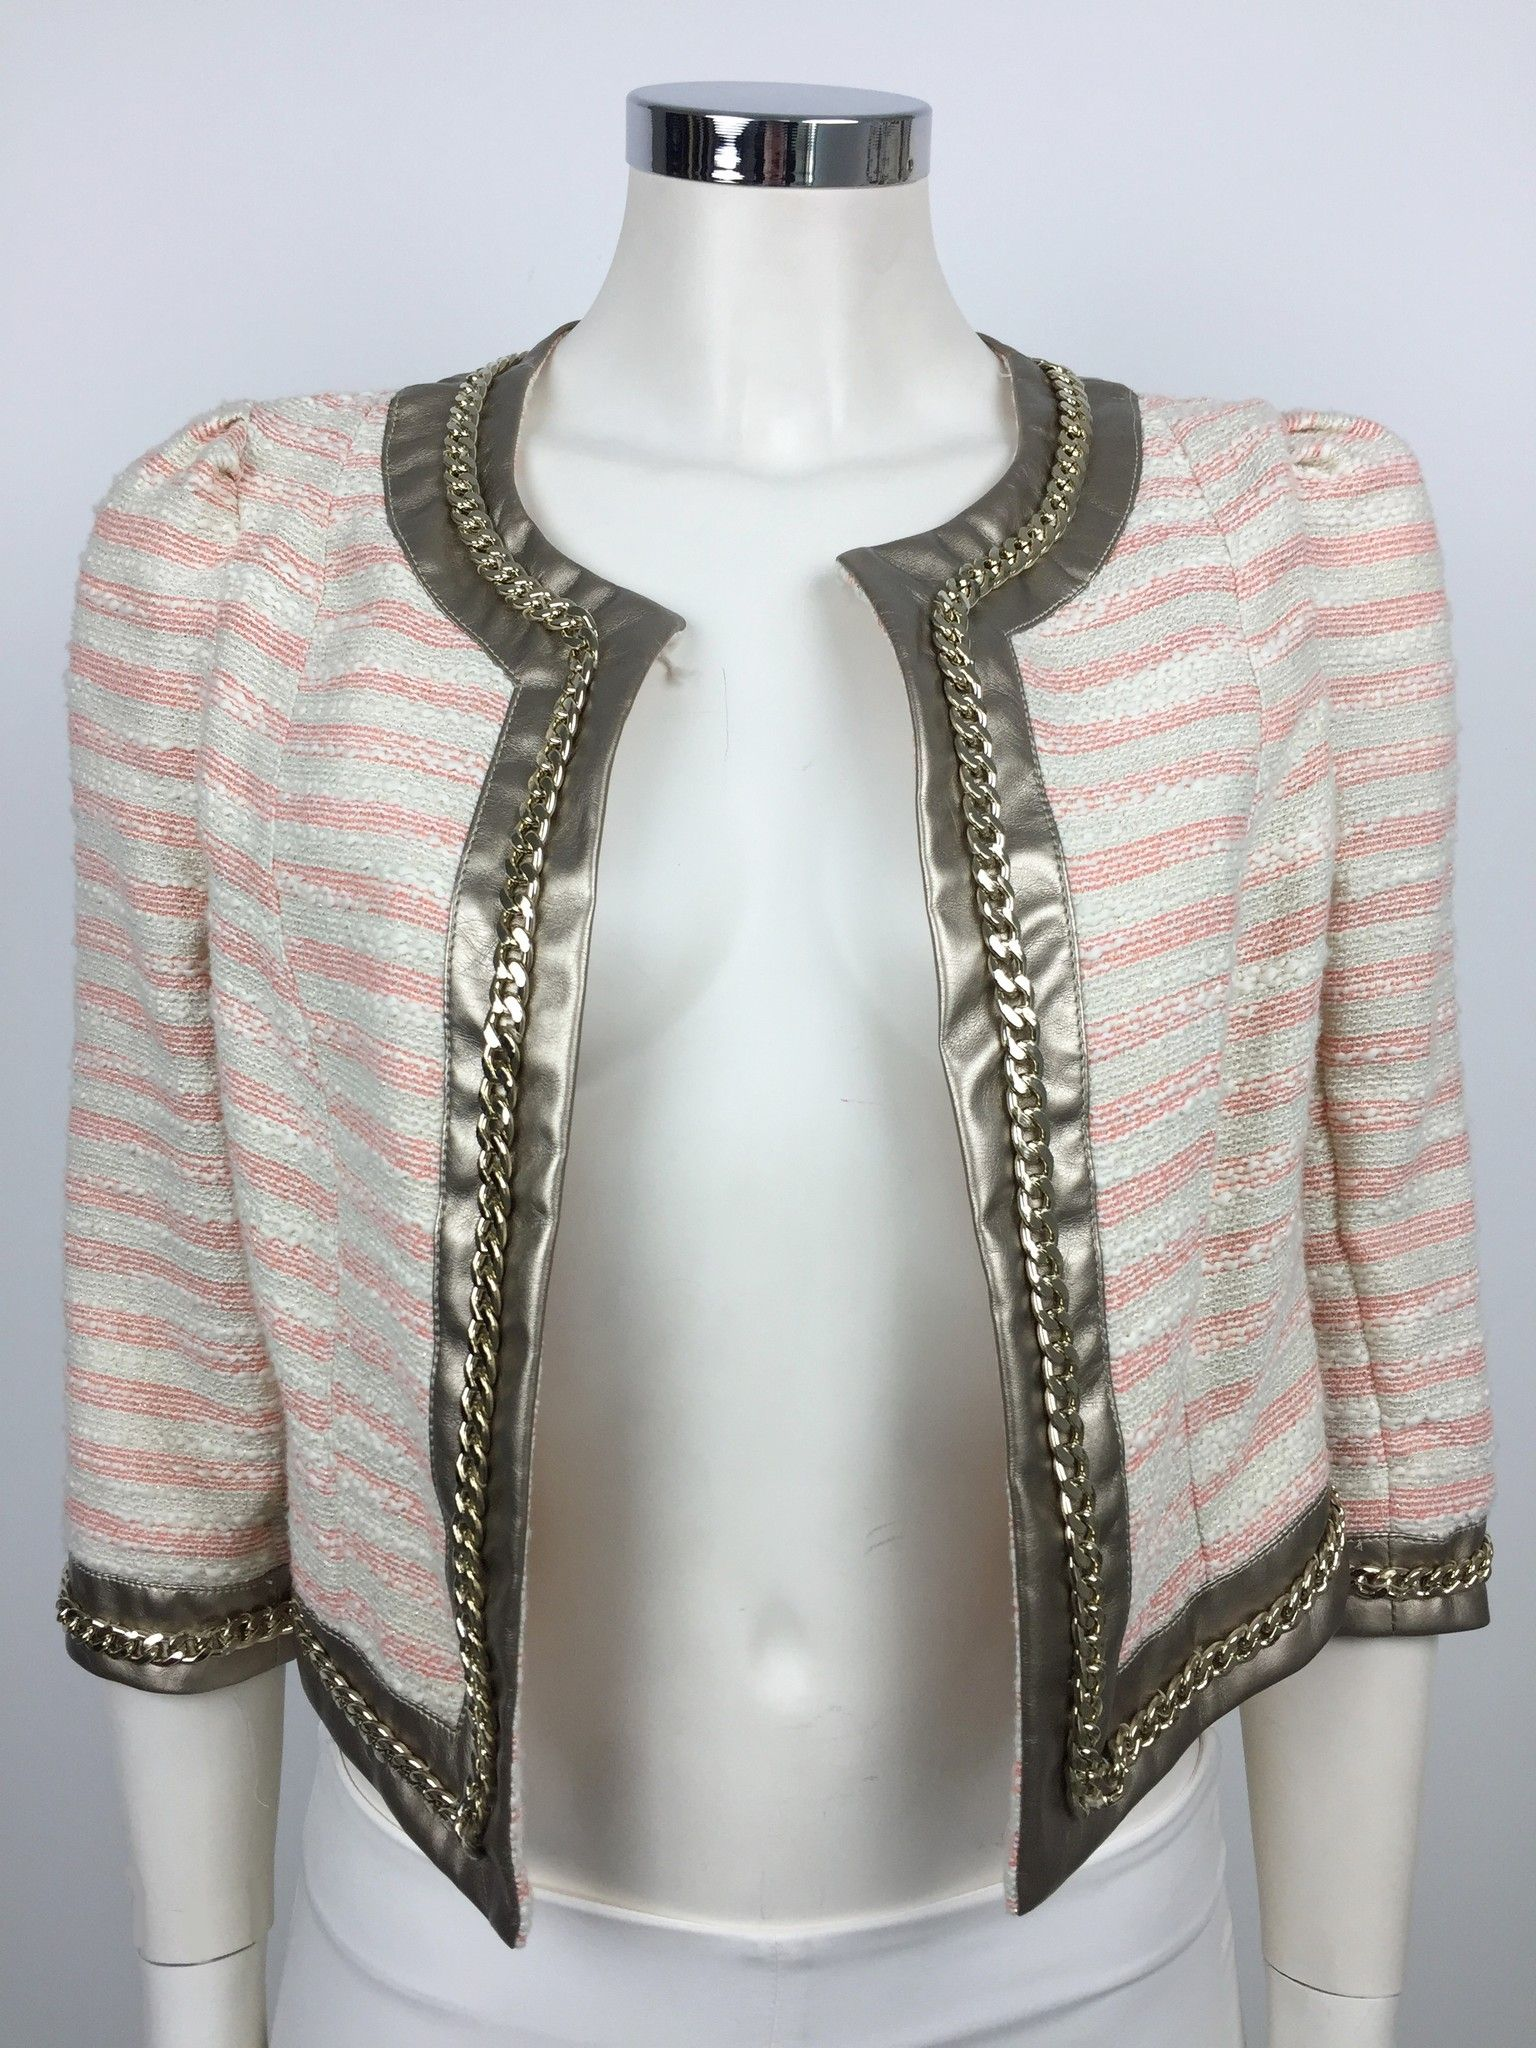 Roberta Biagi Jacket with Golden Profiles and Chain Cod.9745E